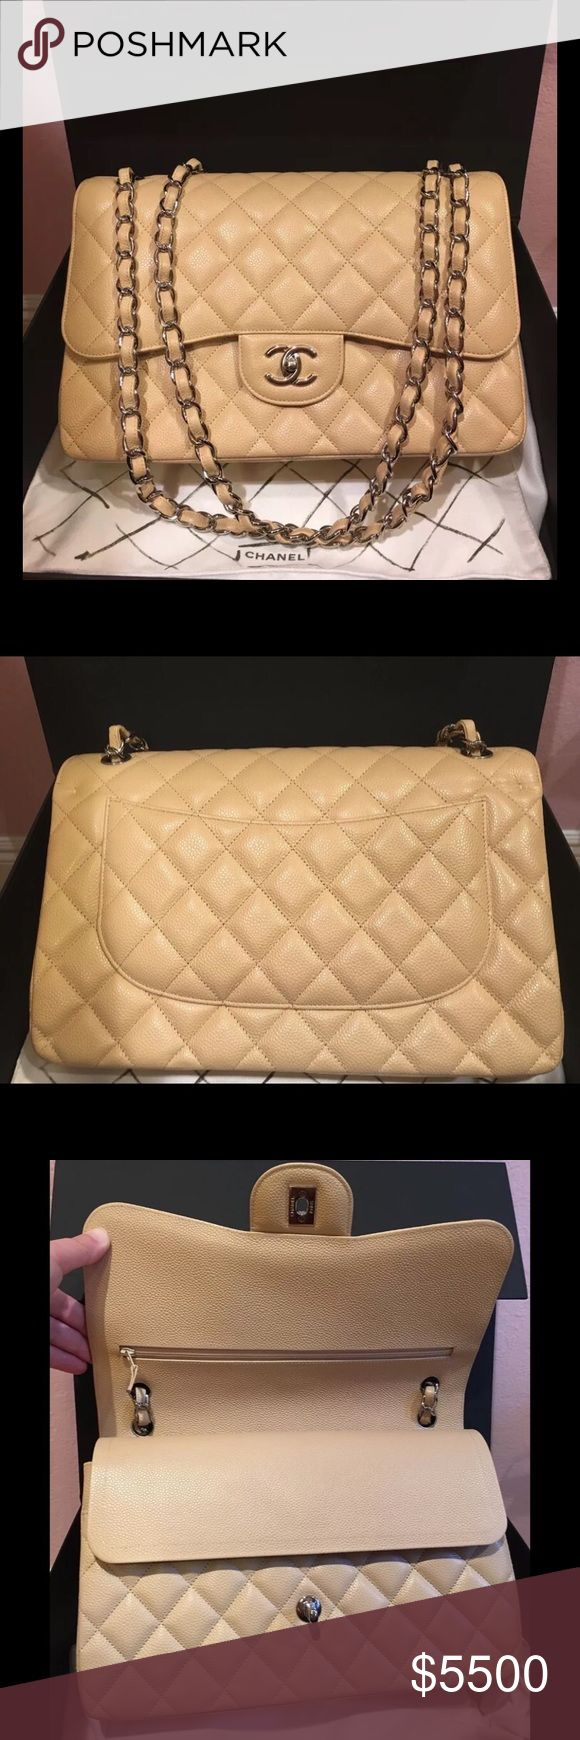 """CHANEL CLASSIC JUMBO DOUBLE FLAP BAG CAVIAR BEIGE Beautiful and in New condition is a Chanel 2.55 Classic Jumbo Double Flag bag in Caviar Leather with Silver hardware.   Comes in original box, with authenticity card, and dust bag.   Measurements: 12""""L x 8""""H x 3.5""""D  NO TRADES.  PRICE ON POSH IS FIRM.  SERIOUS BUYERS ONLY. CHANEL Bags Shoulder Bags"""